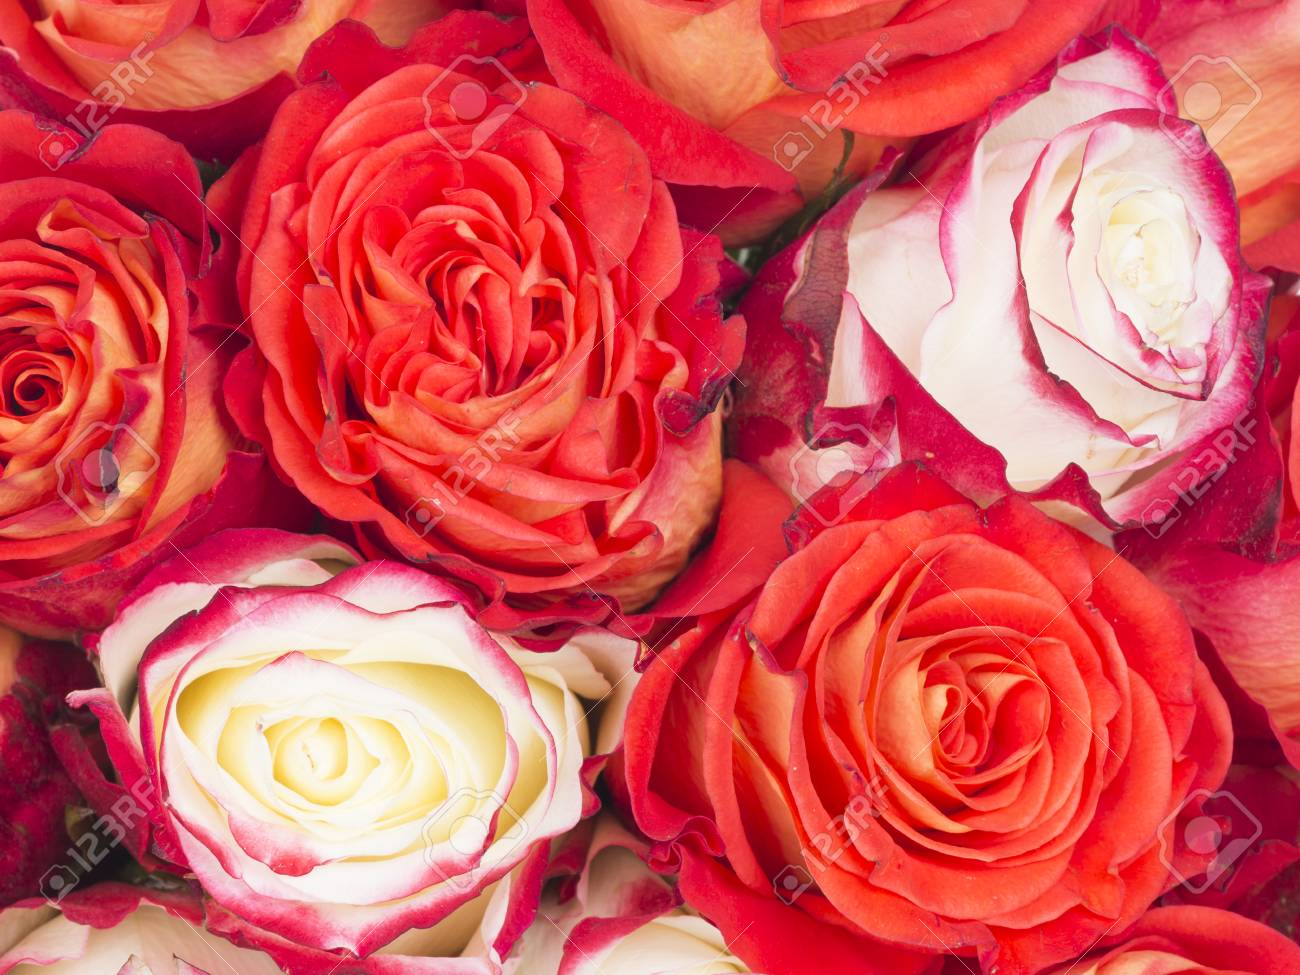 Bouquet of flowers roses beautiful bright red and white with bouquet of flowers roses beautiful bright red and white with a pink border on petals izmirmasajfo